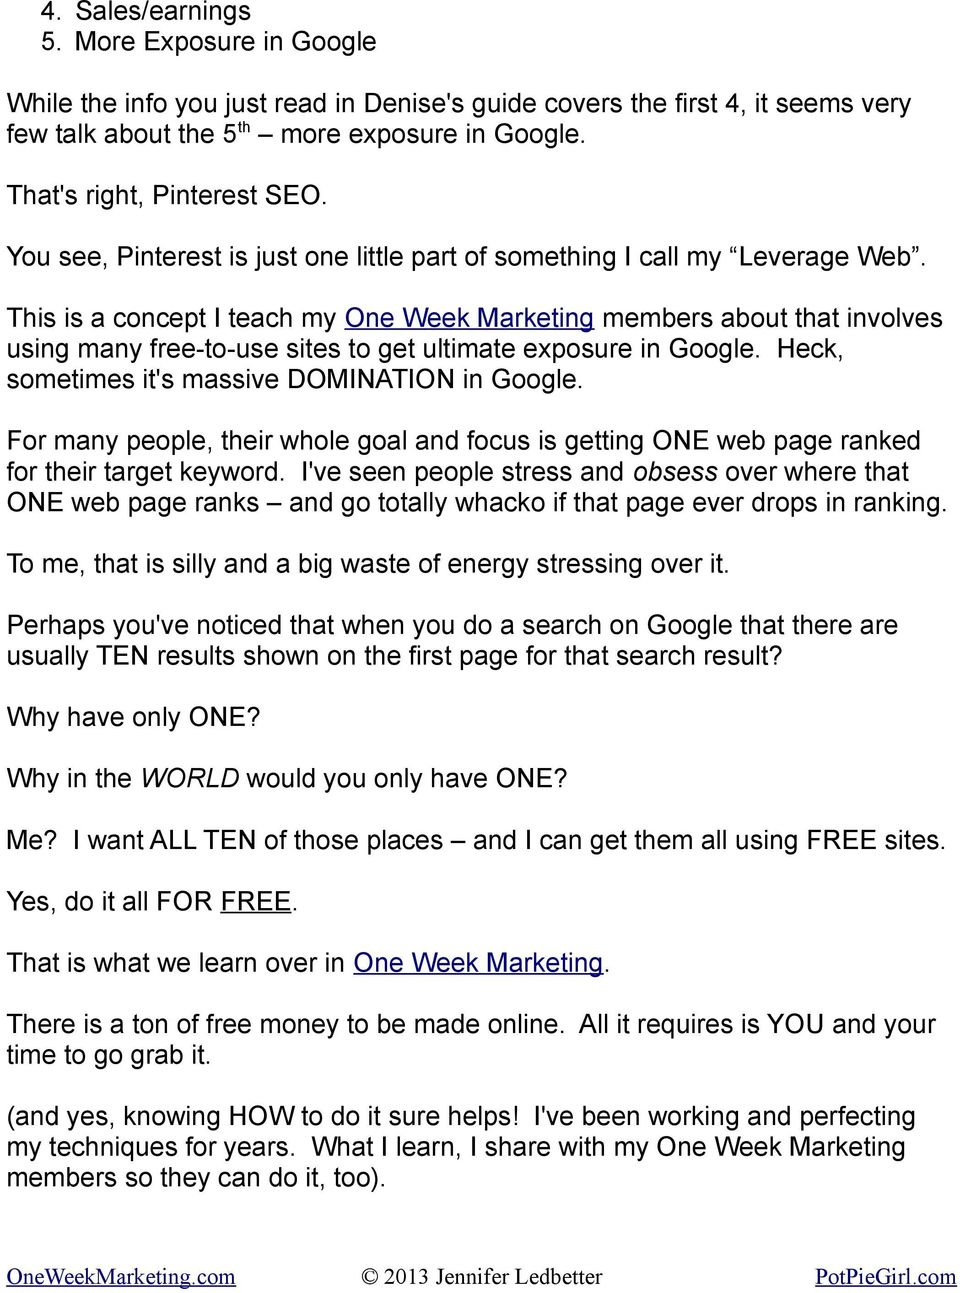 This is a concept I teach my One Week Marketing members about that involves using many free-to-use sites to get ultimate exposure in Google. Heck, sometimes it's massive DOMINATION in Google.